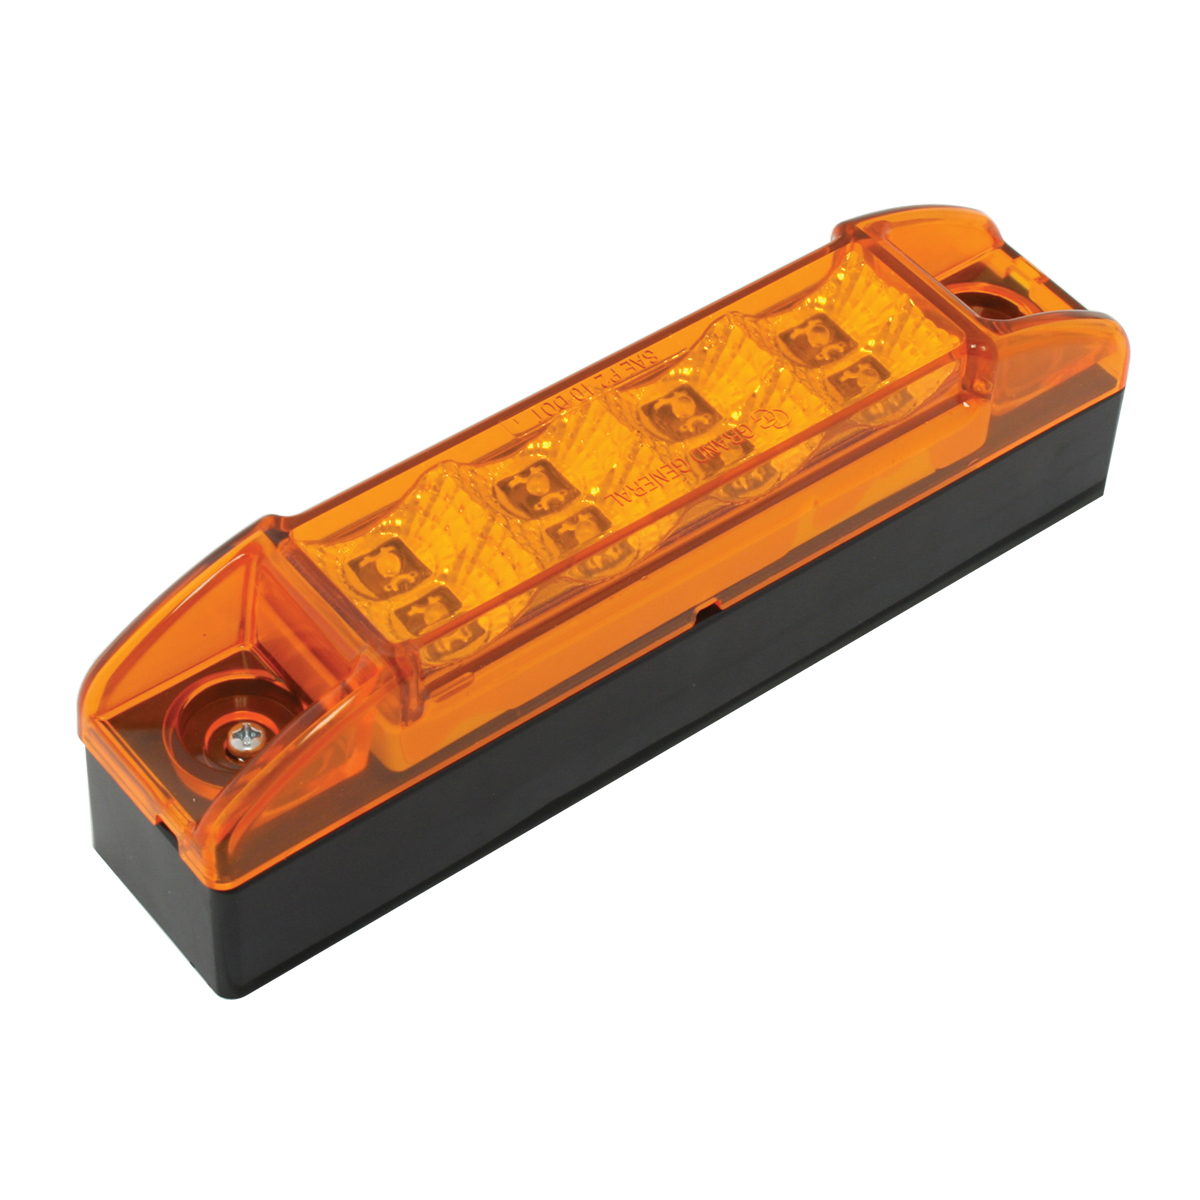 76160 Slim Rectangular Spyder LED Light in Amber/Amber with Riser